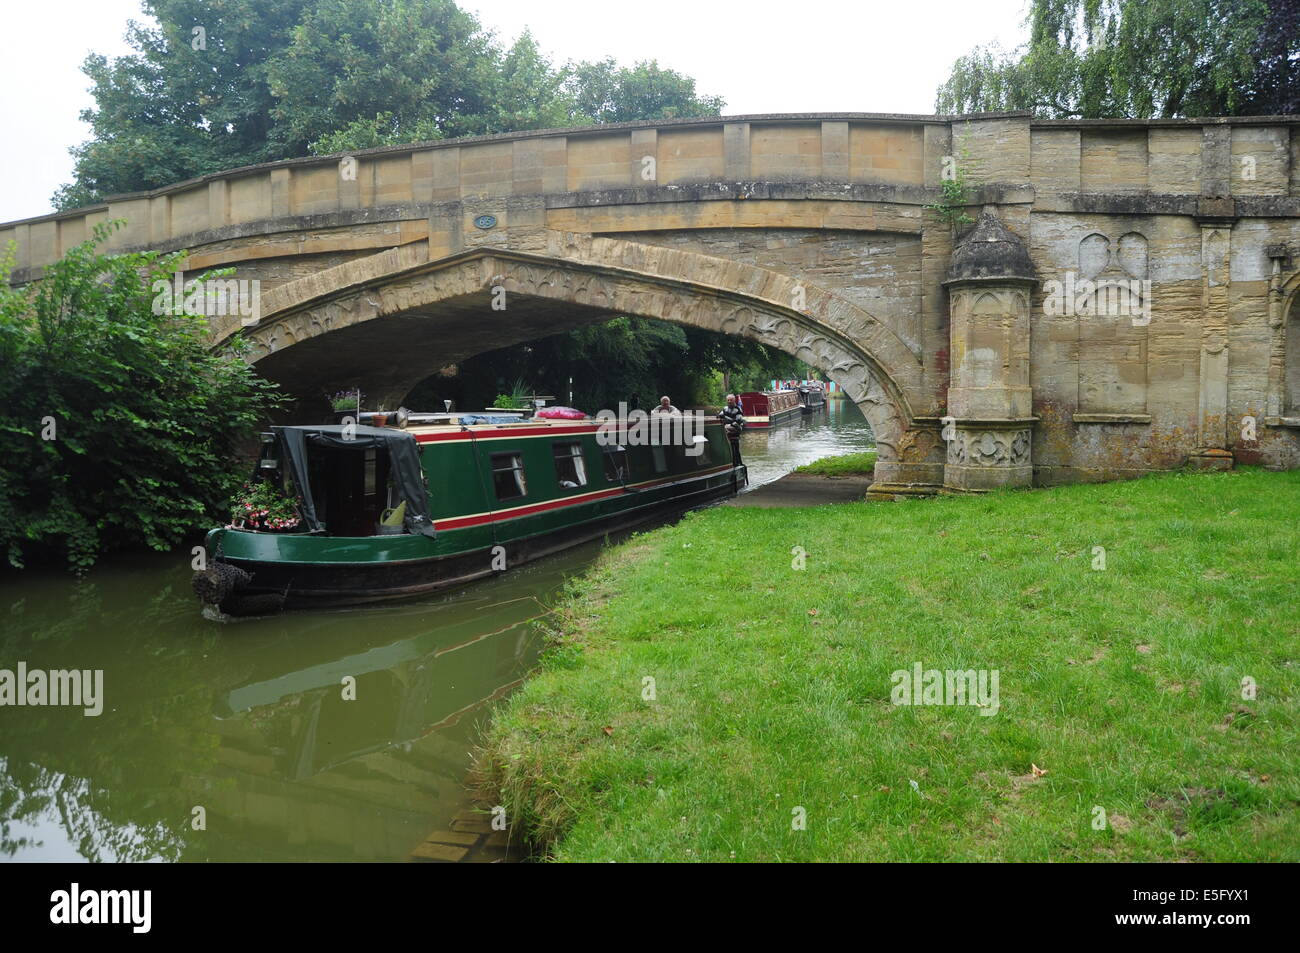 Bridge on the Grand Union canal at Cosgrove in Northamptonshire Stock Photo